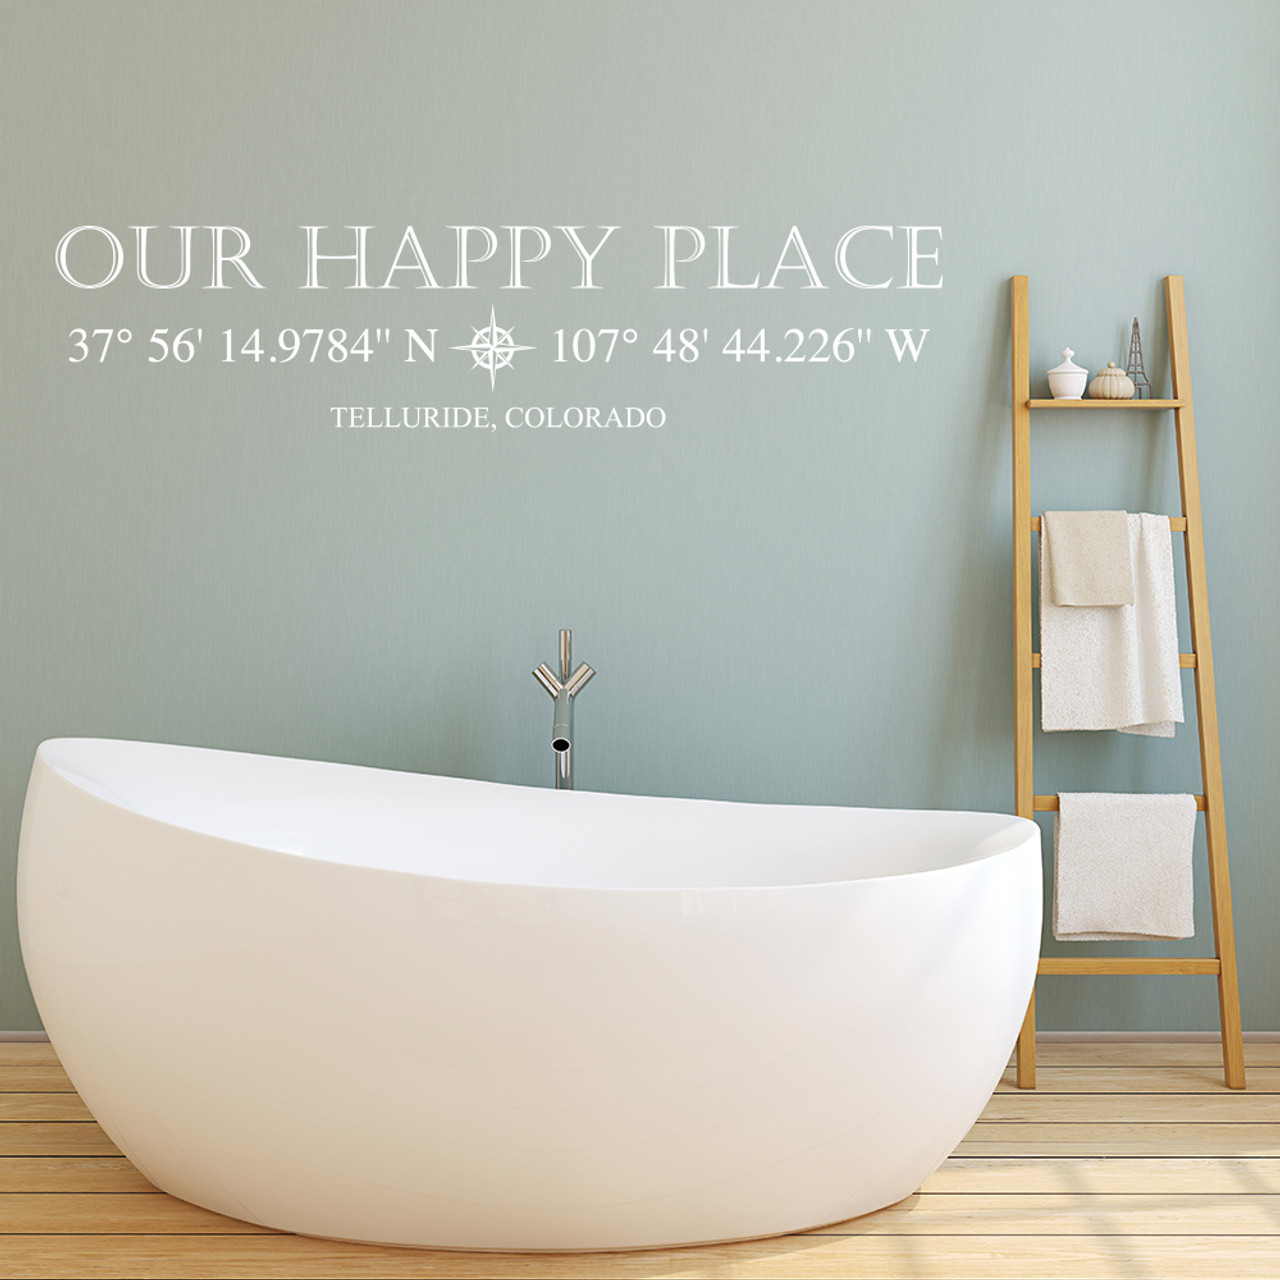 Our Happy Place vinyl wall decal with customizable coordinates, town and state name in white